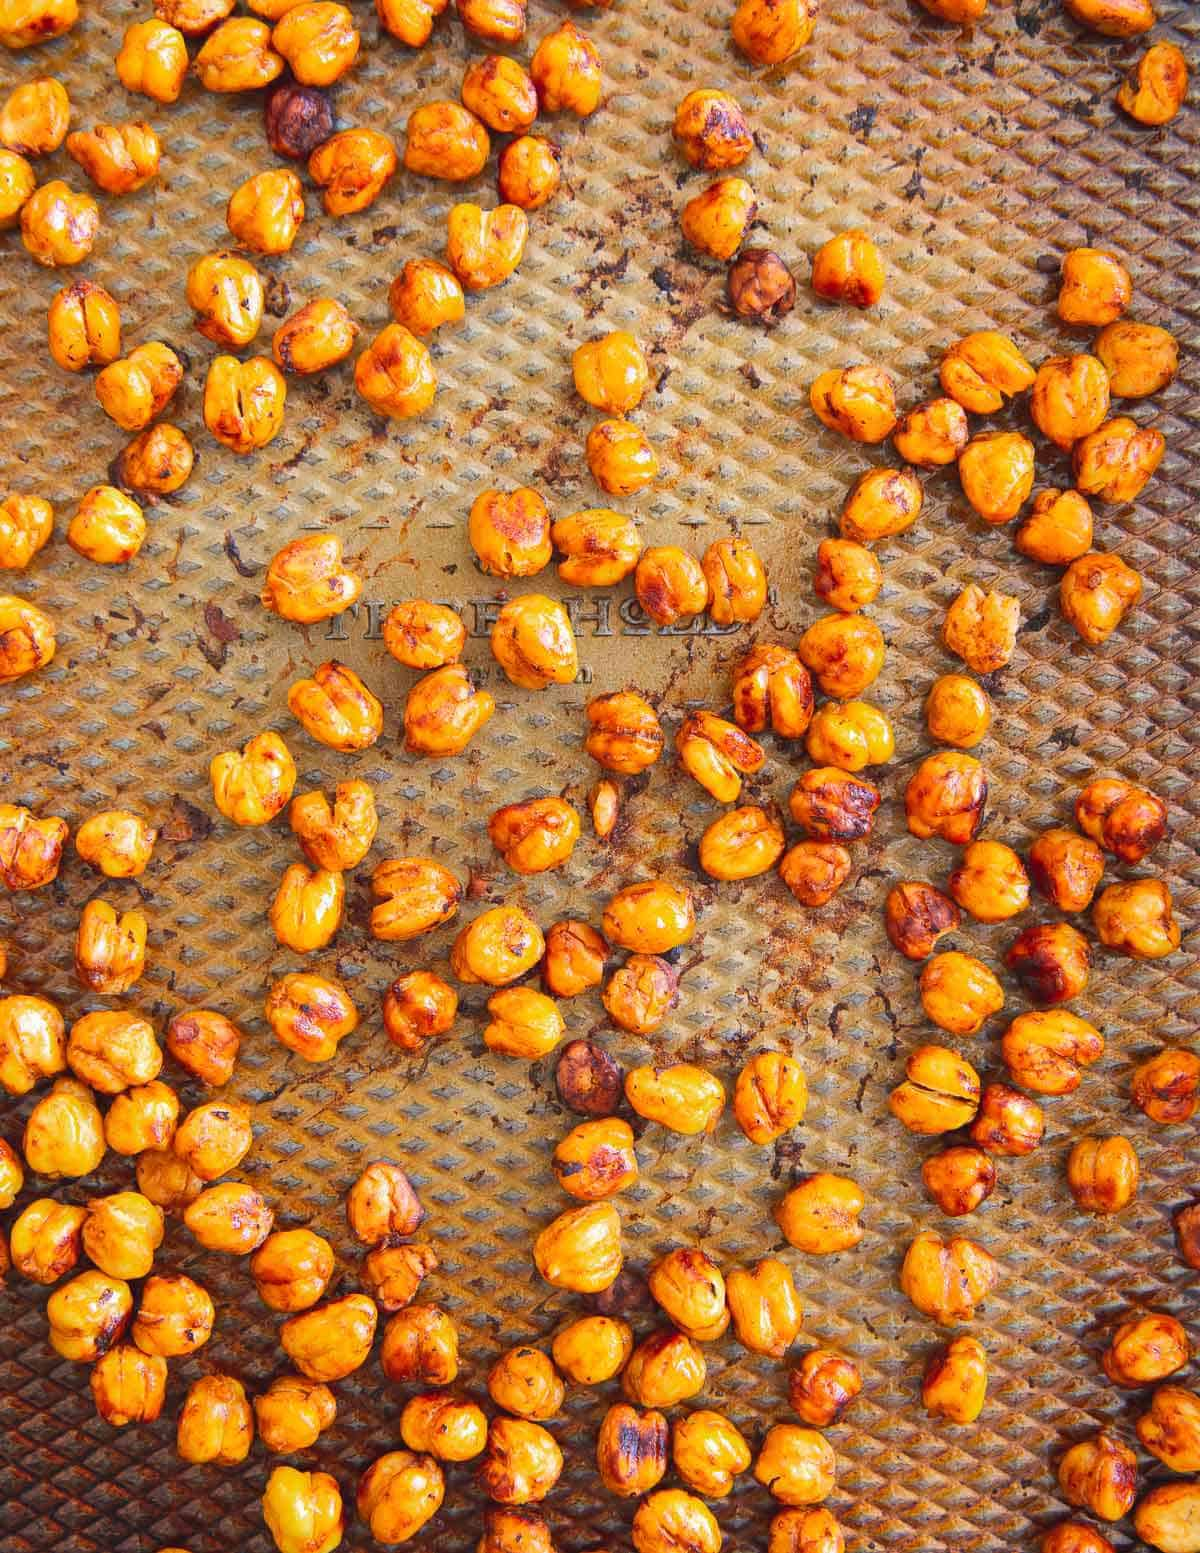 This simple roasting method makes the best crunchy BBQ chickpeas for snacking or adding to salads.